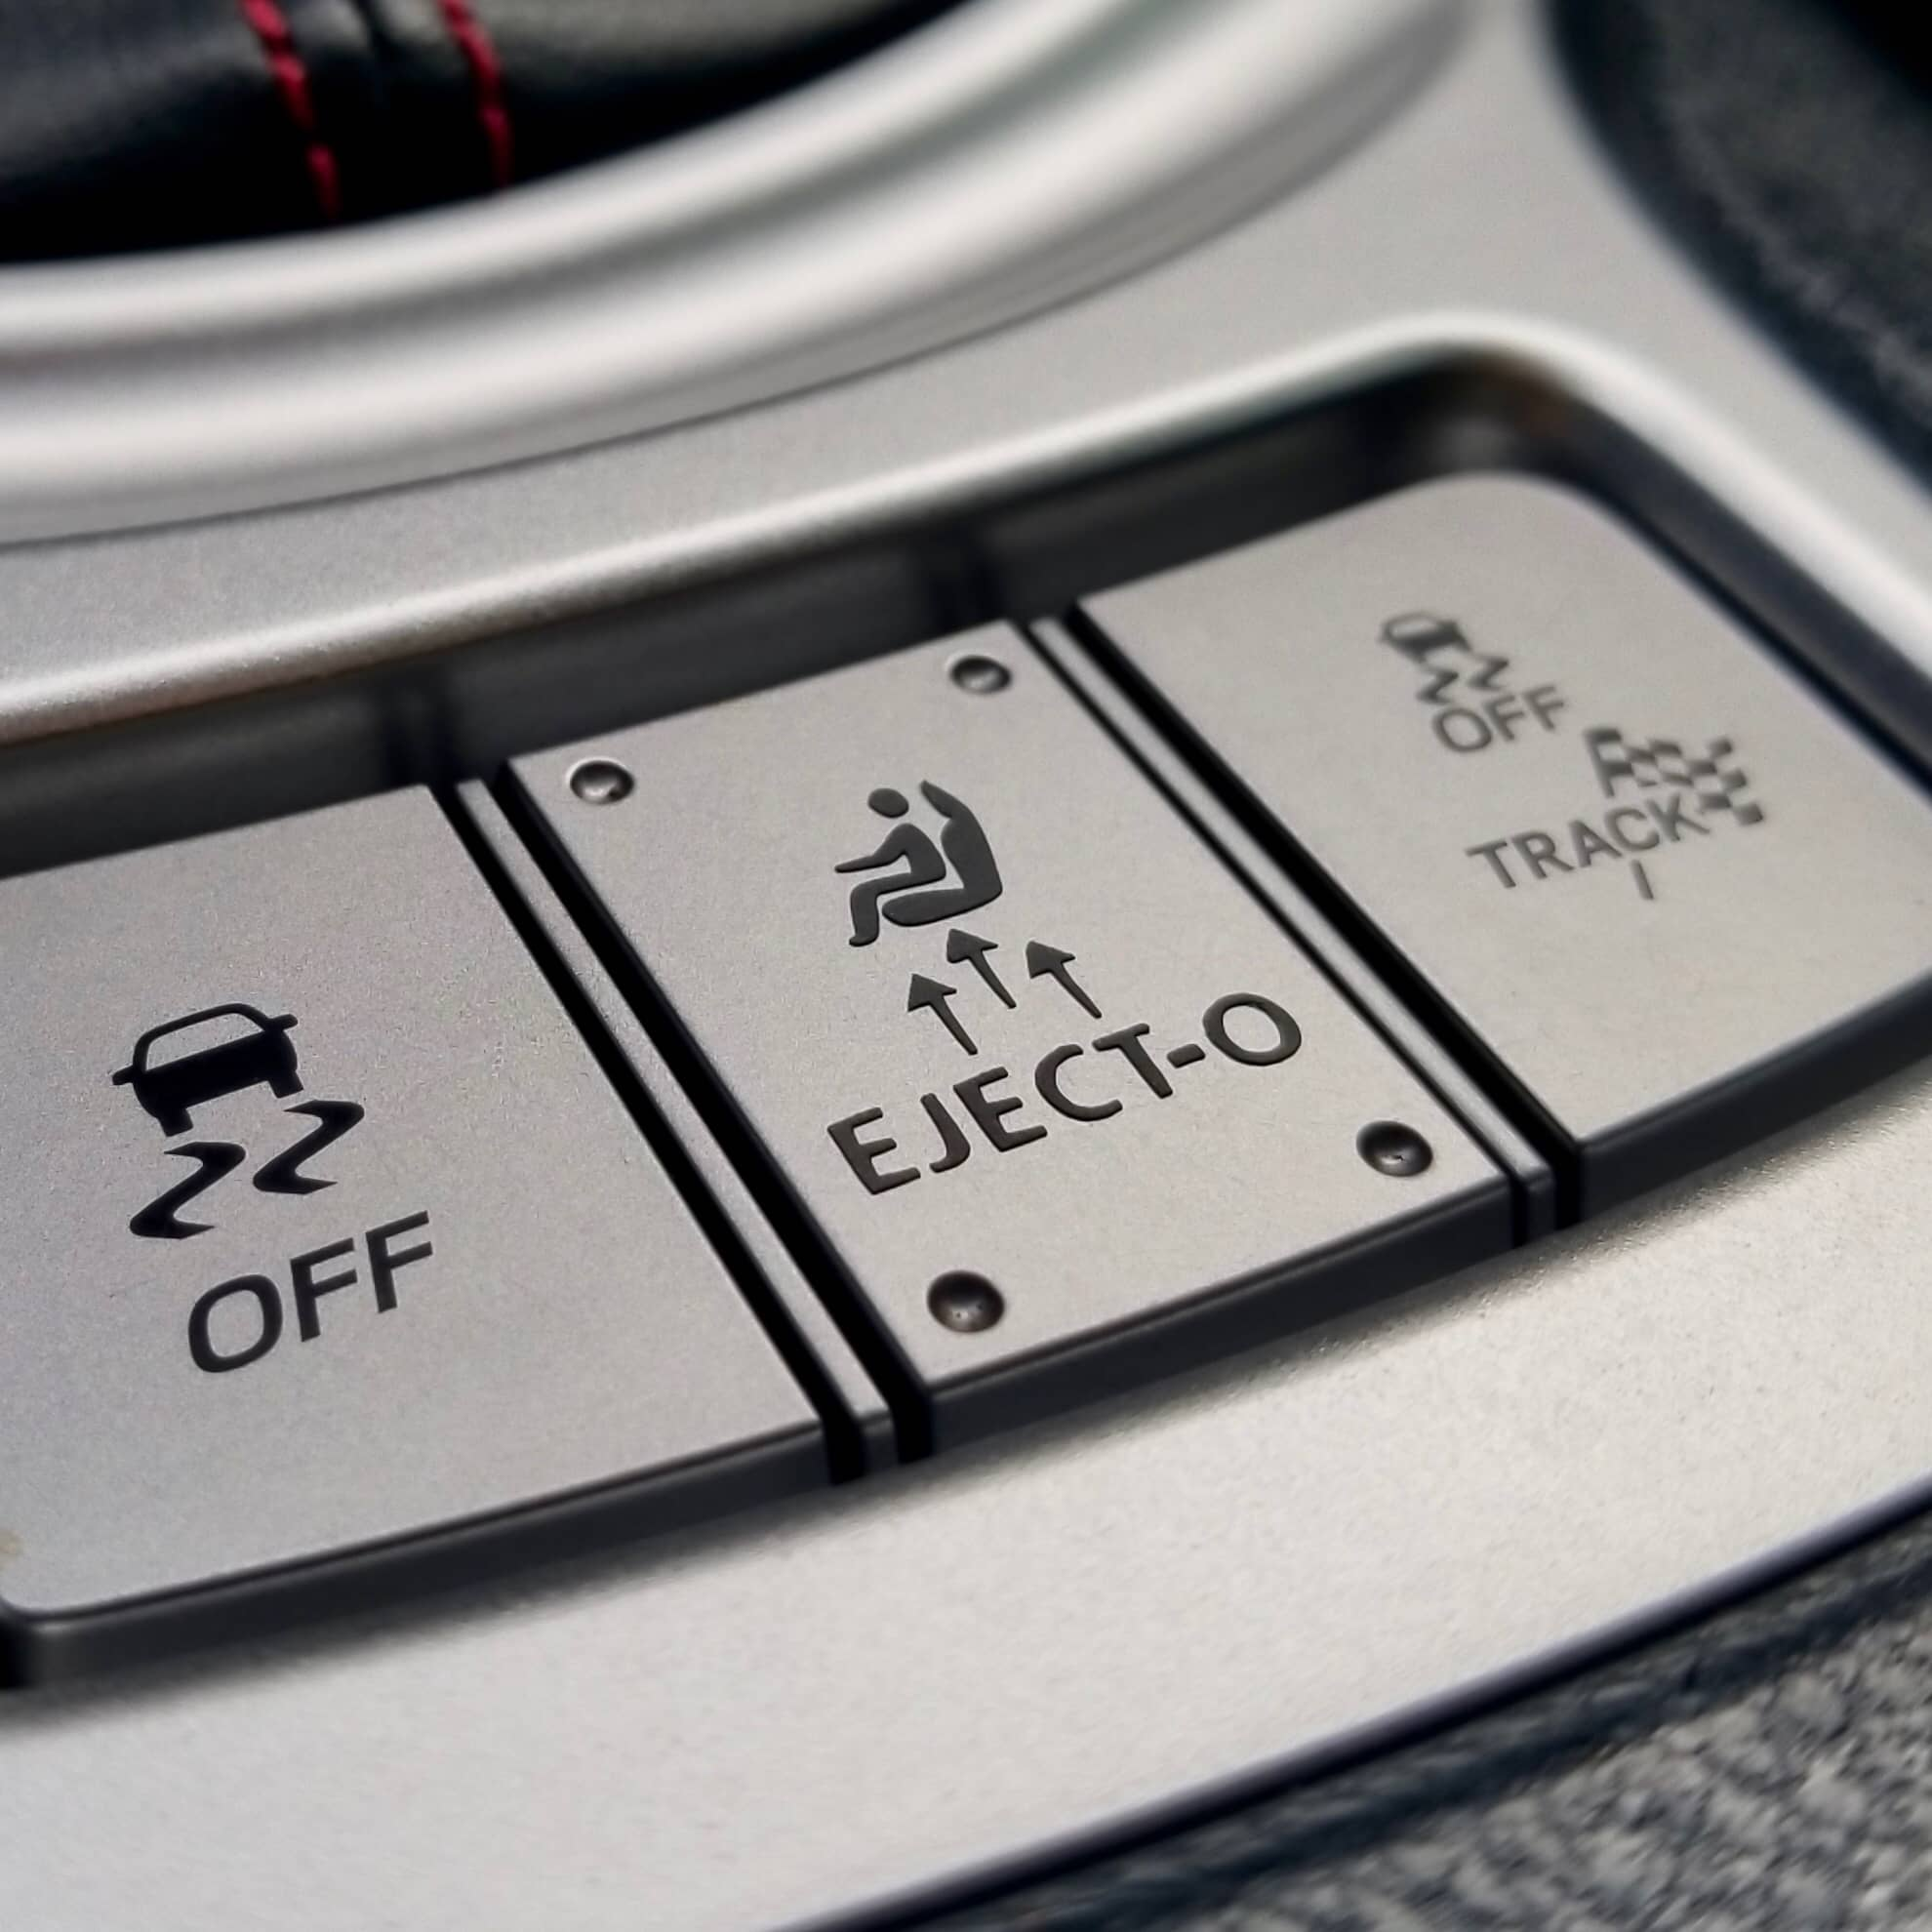 Eject-O Seat-O for Civic